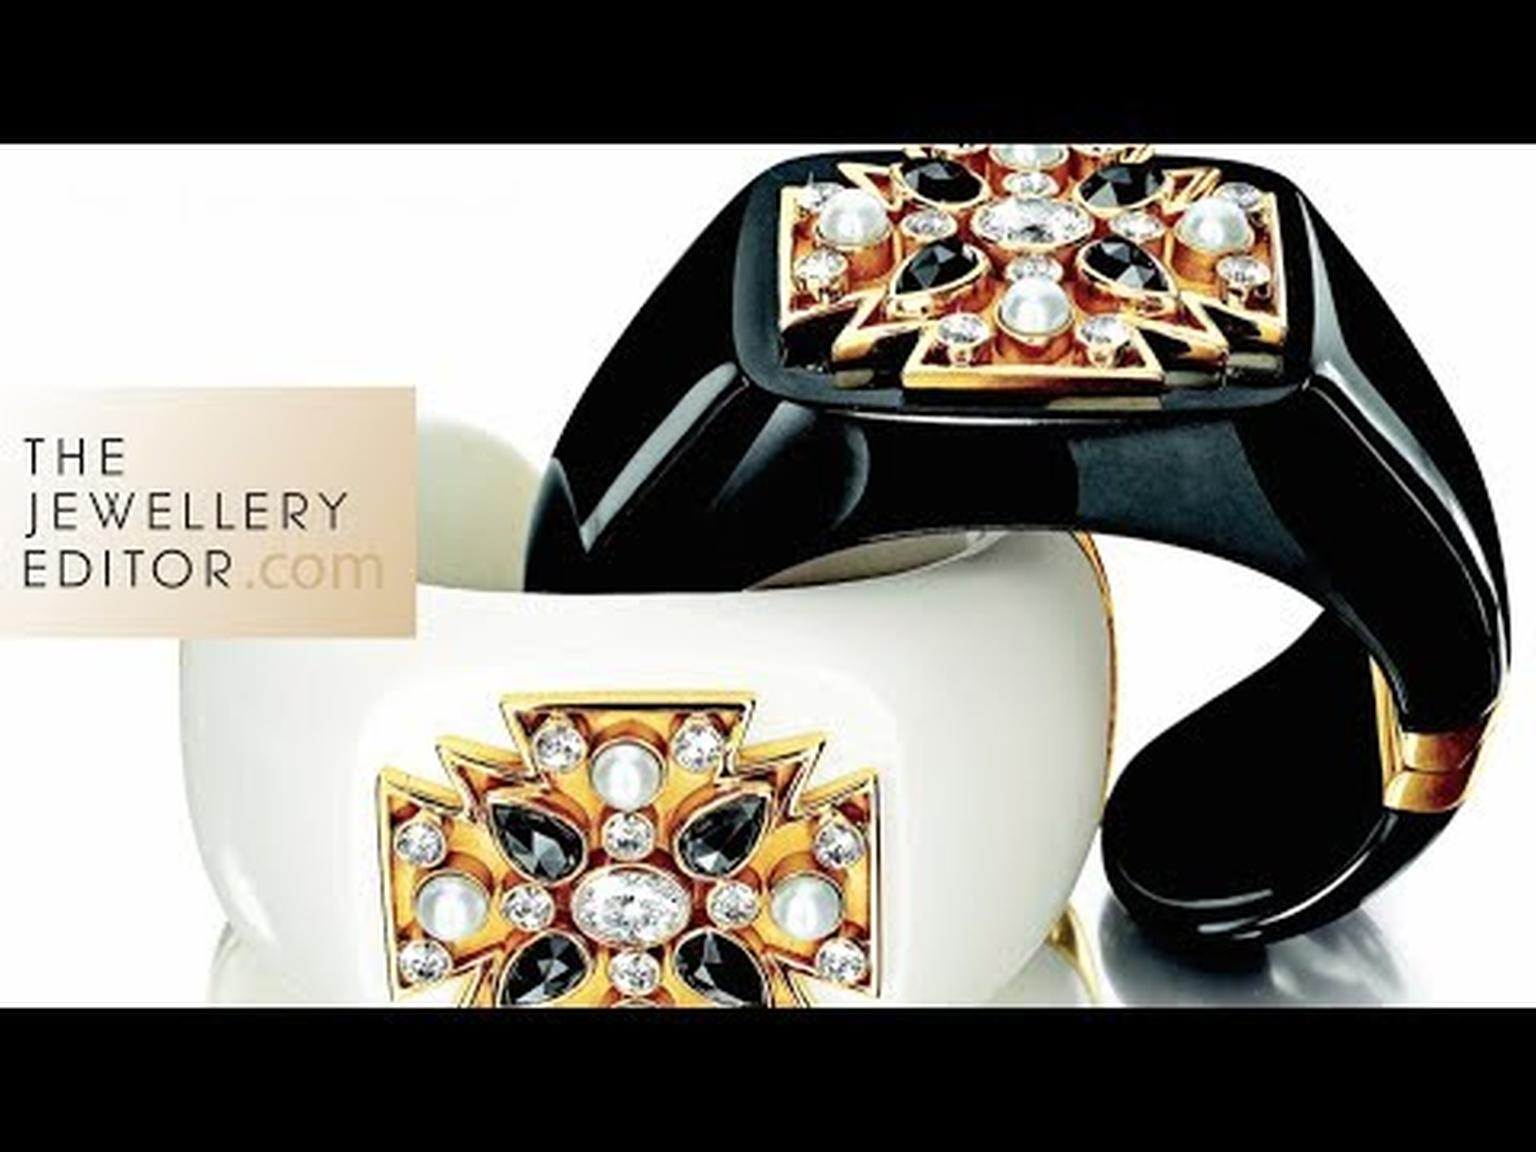 Masterpiece 2014 jewellery and watches Coming soon to London